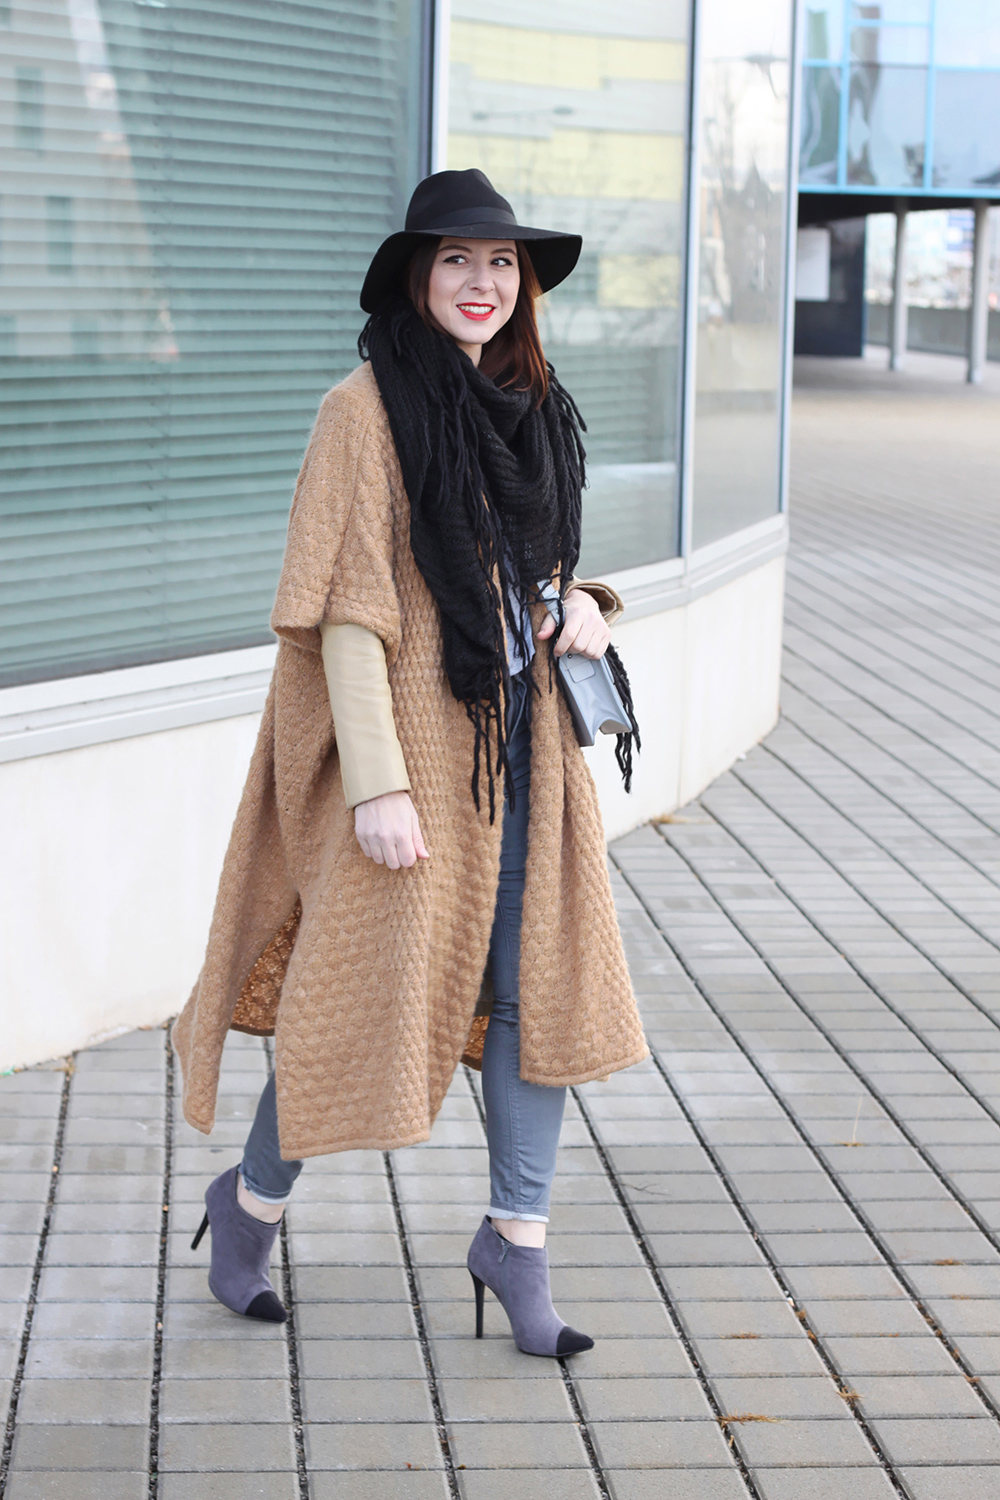 who is mocca, blogger tirol, fashionblogger, ootd, layering, lagenlook, beige, grau, neutral shades, wie kombinieren, how to style, wie traegt man, cape, poncho, anklets, fedora, rote lippen, ledermantel, vintage, topshop, cross body, fransenschal, barts, primark